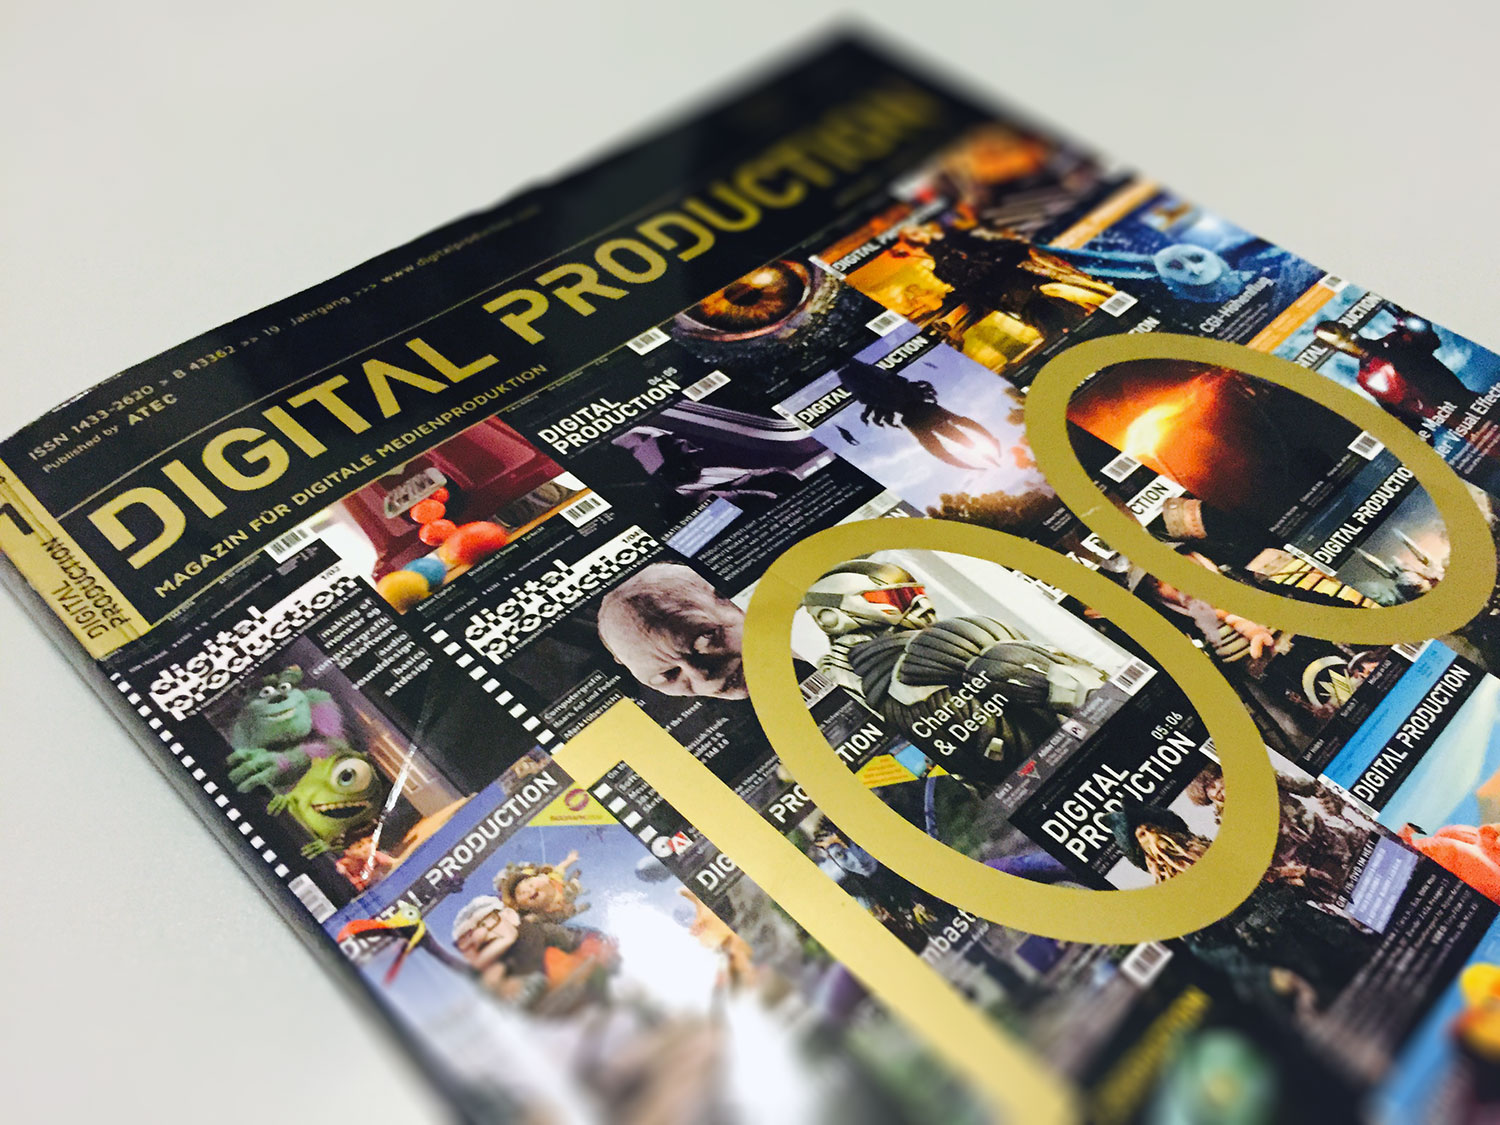 100 Digital Production Ausgabe vom 01.2015